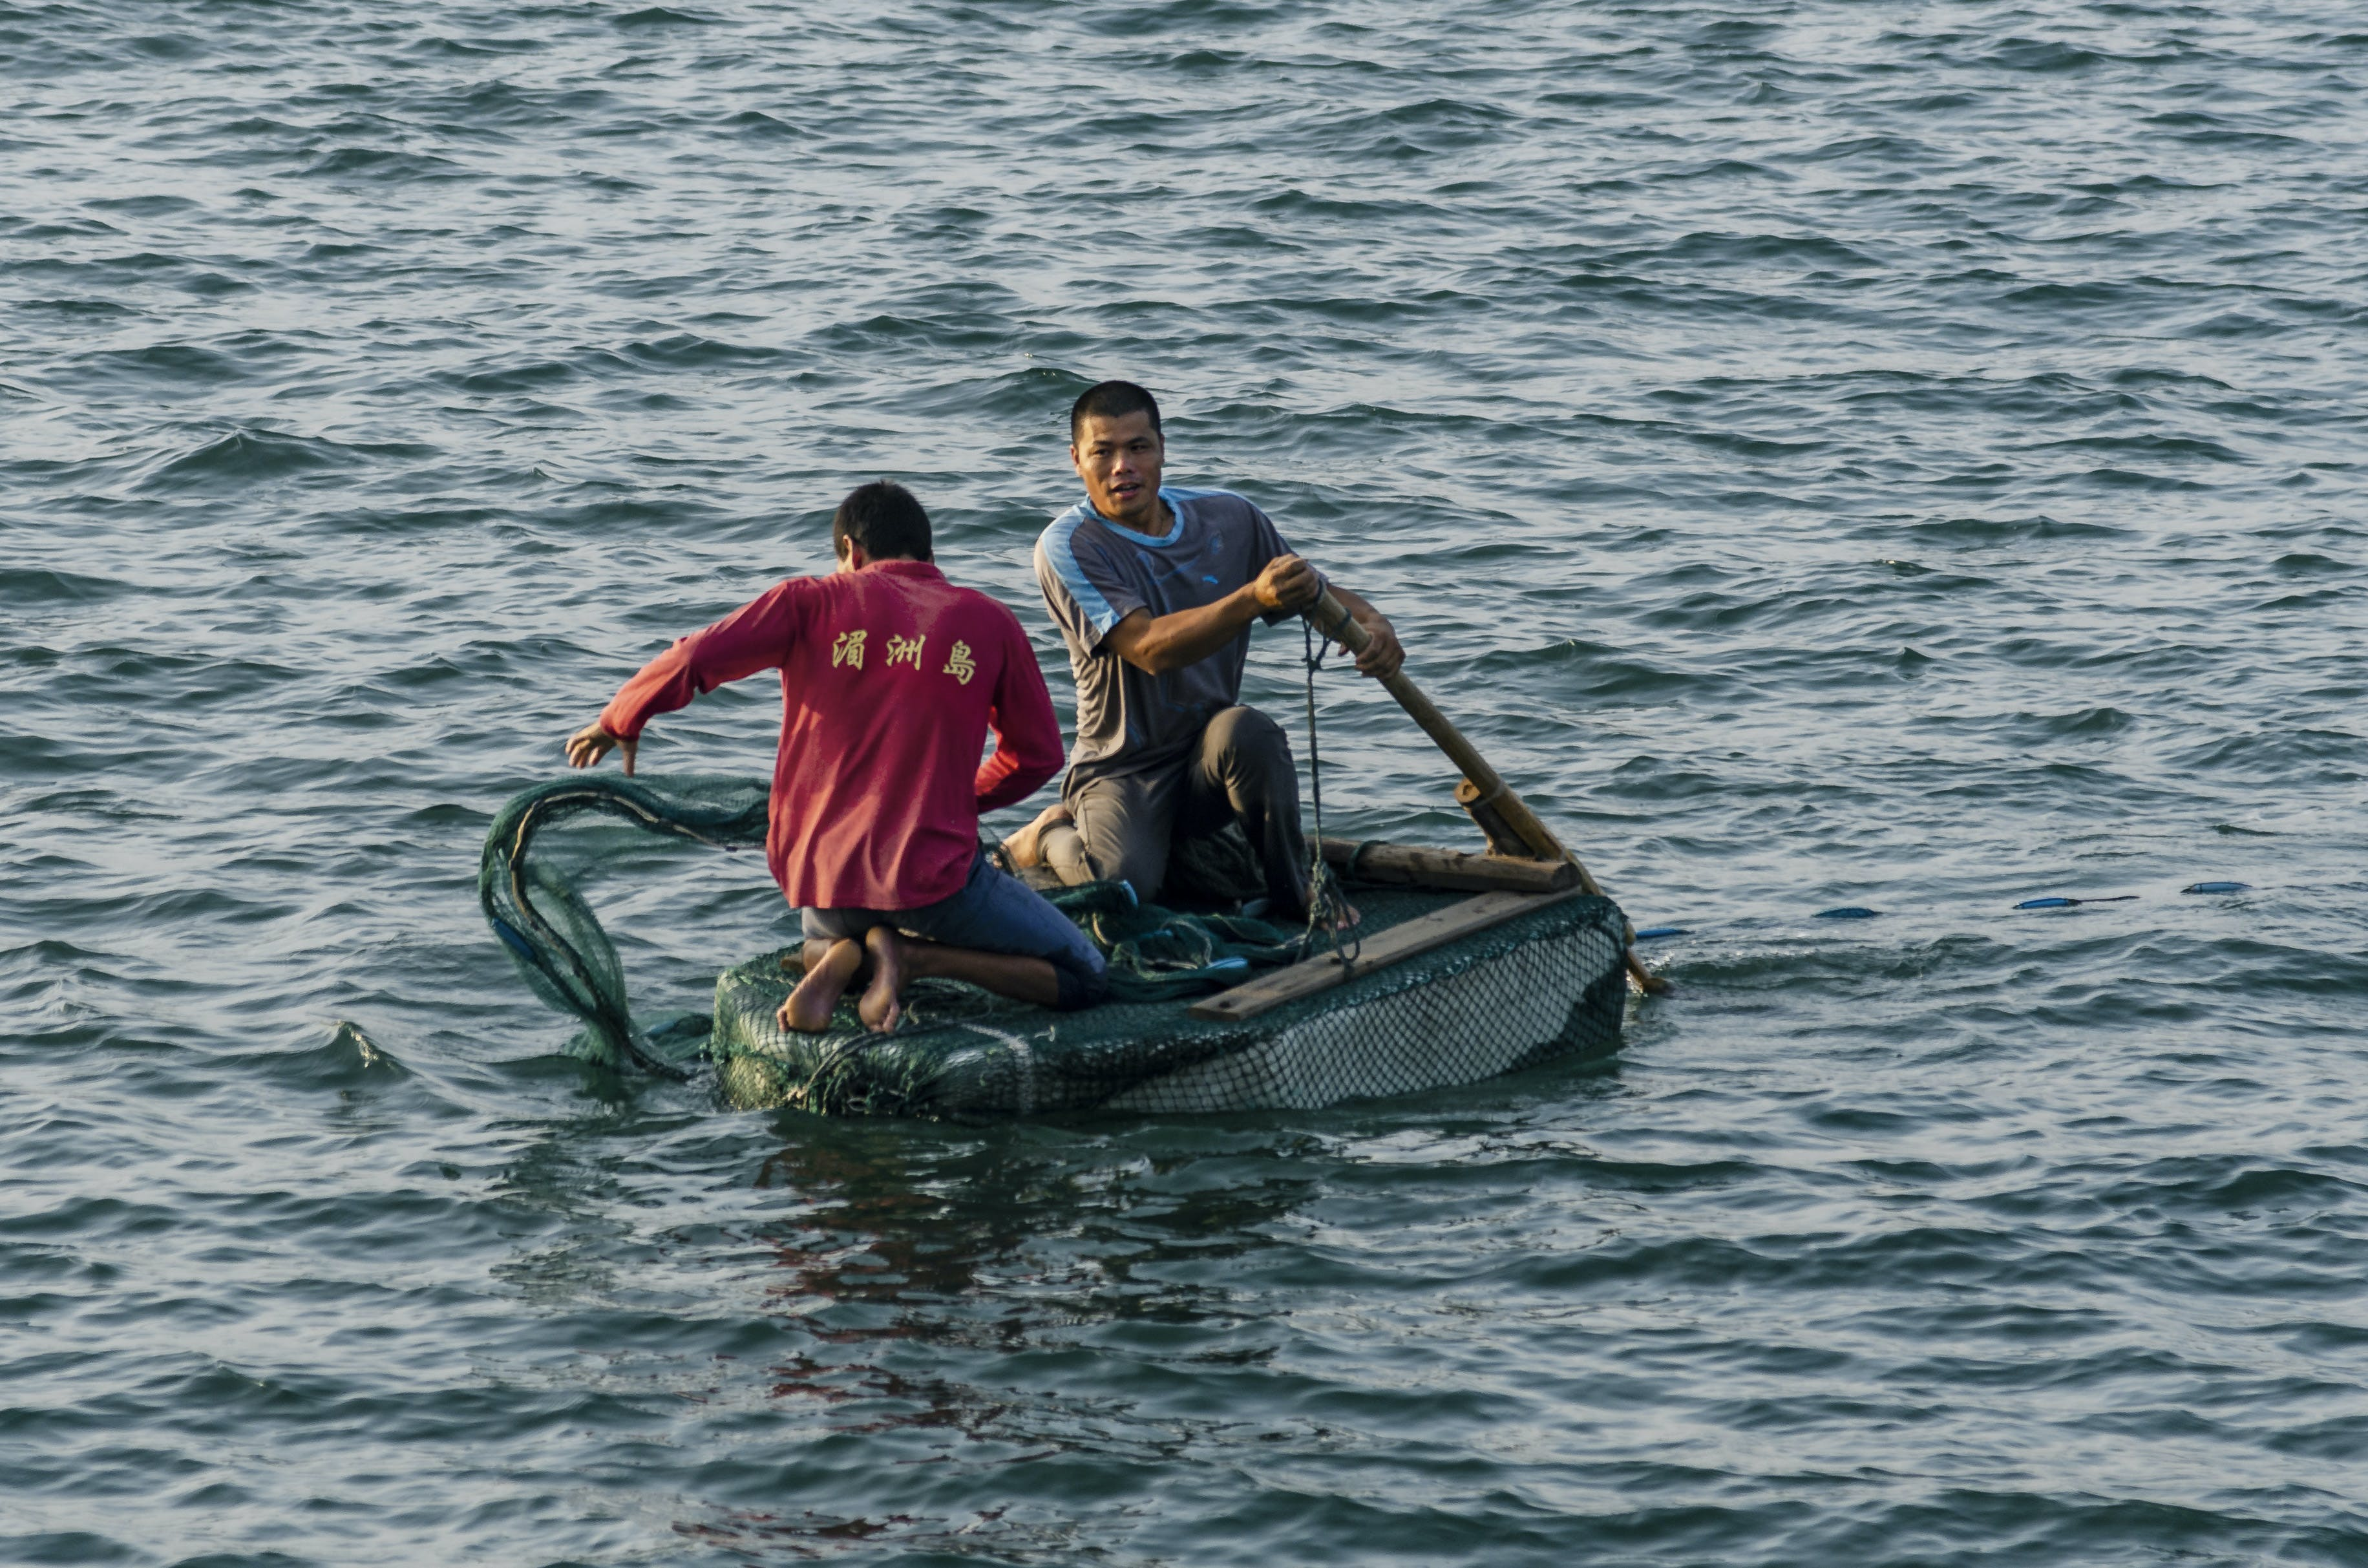 Two Man Riding Boat Photography